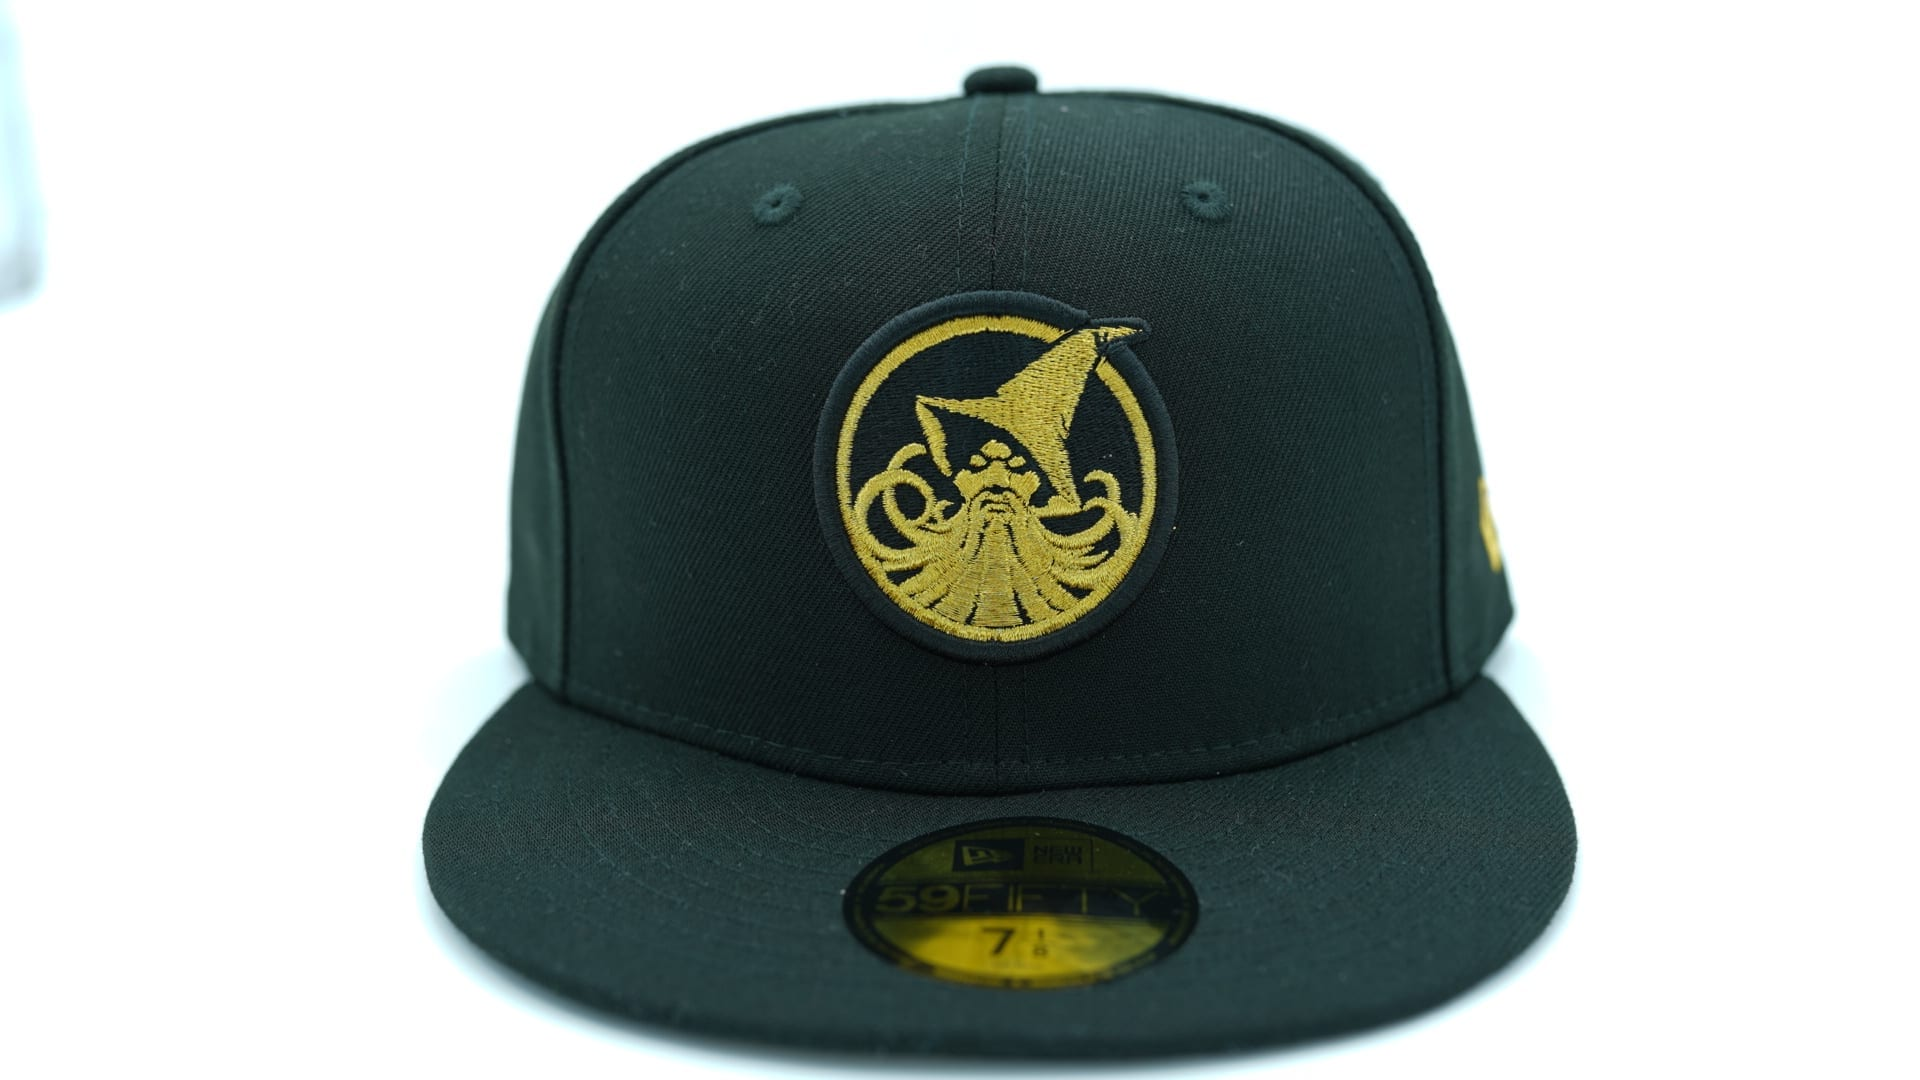 dissizit-new-era-59Fifty-fitted-baseball-cap-hat